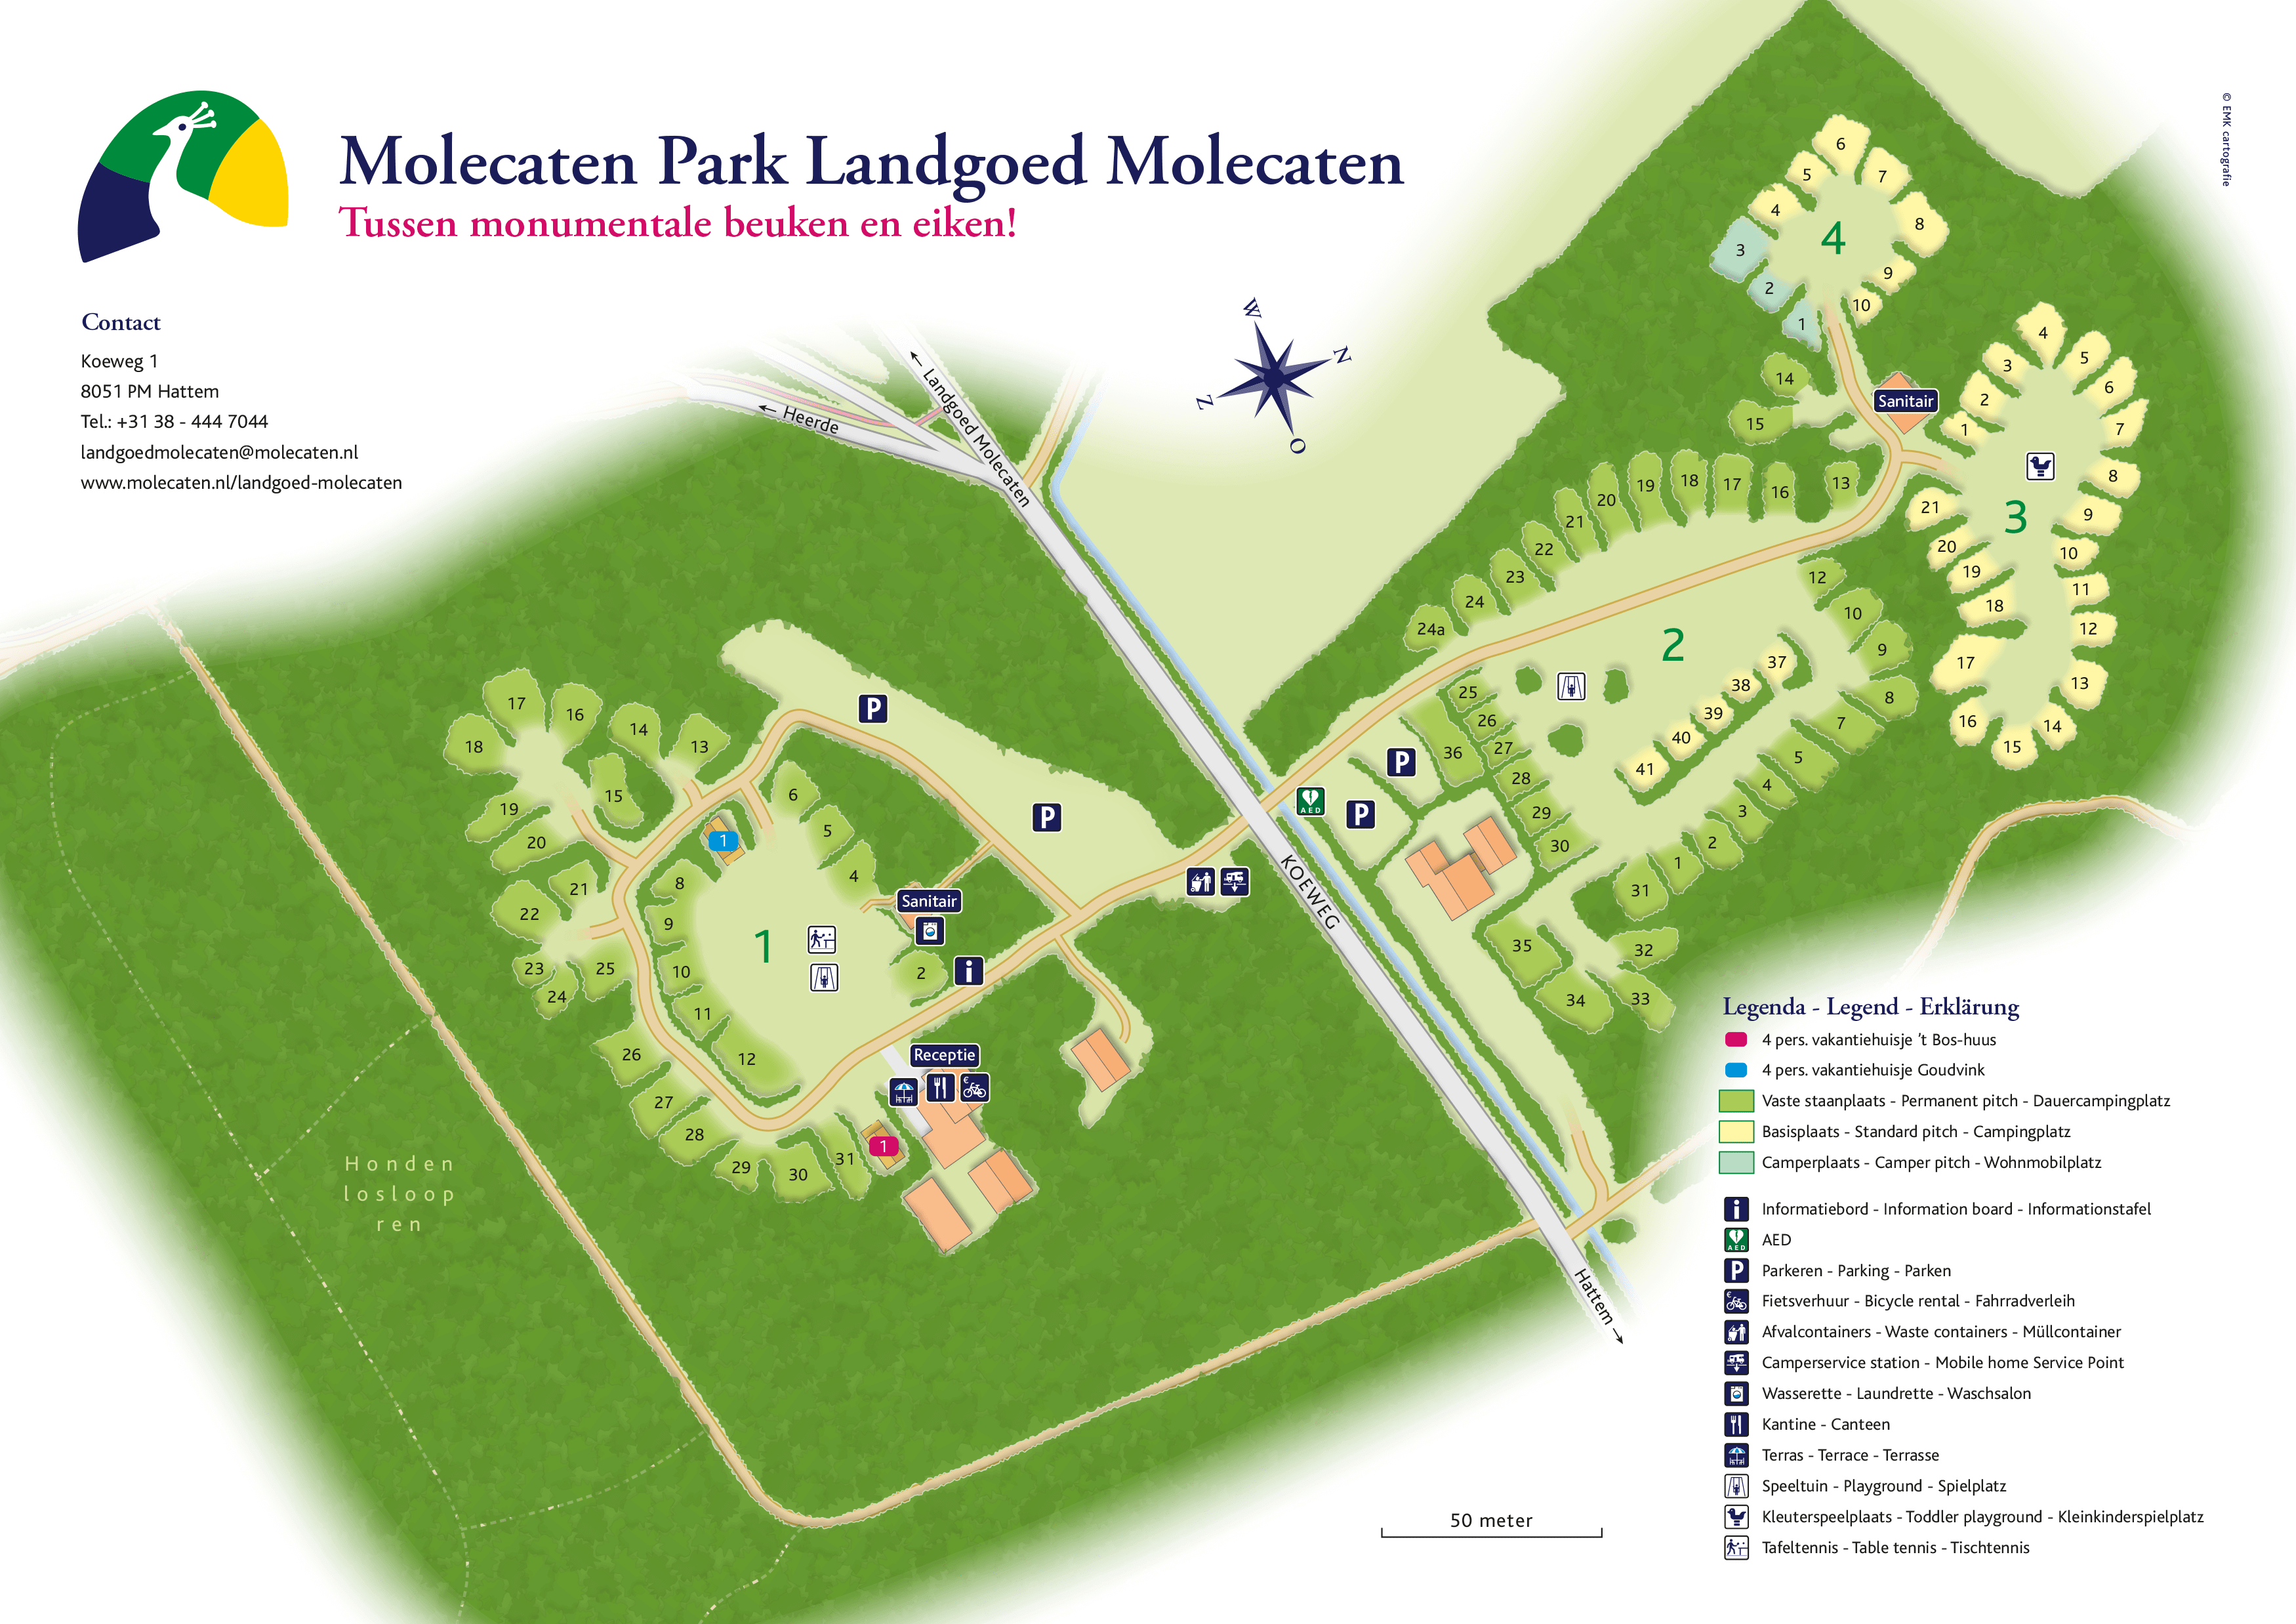 Molecaten Park Landgoed Molecaten accommodation.parkmap.alttext